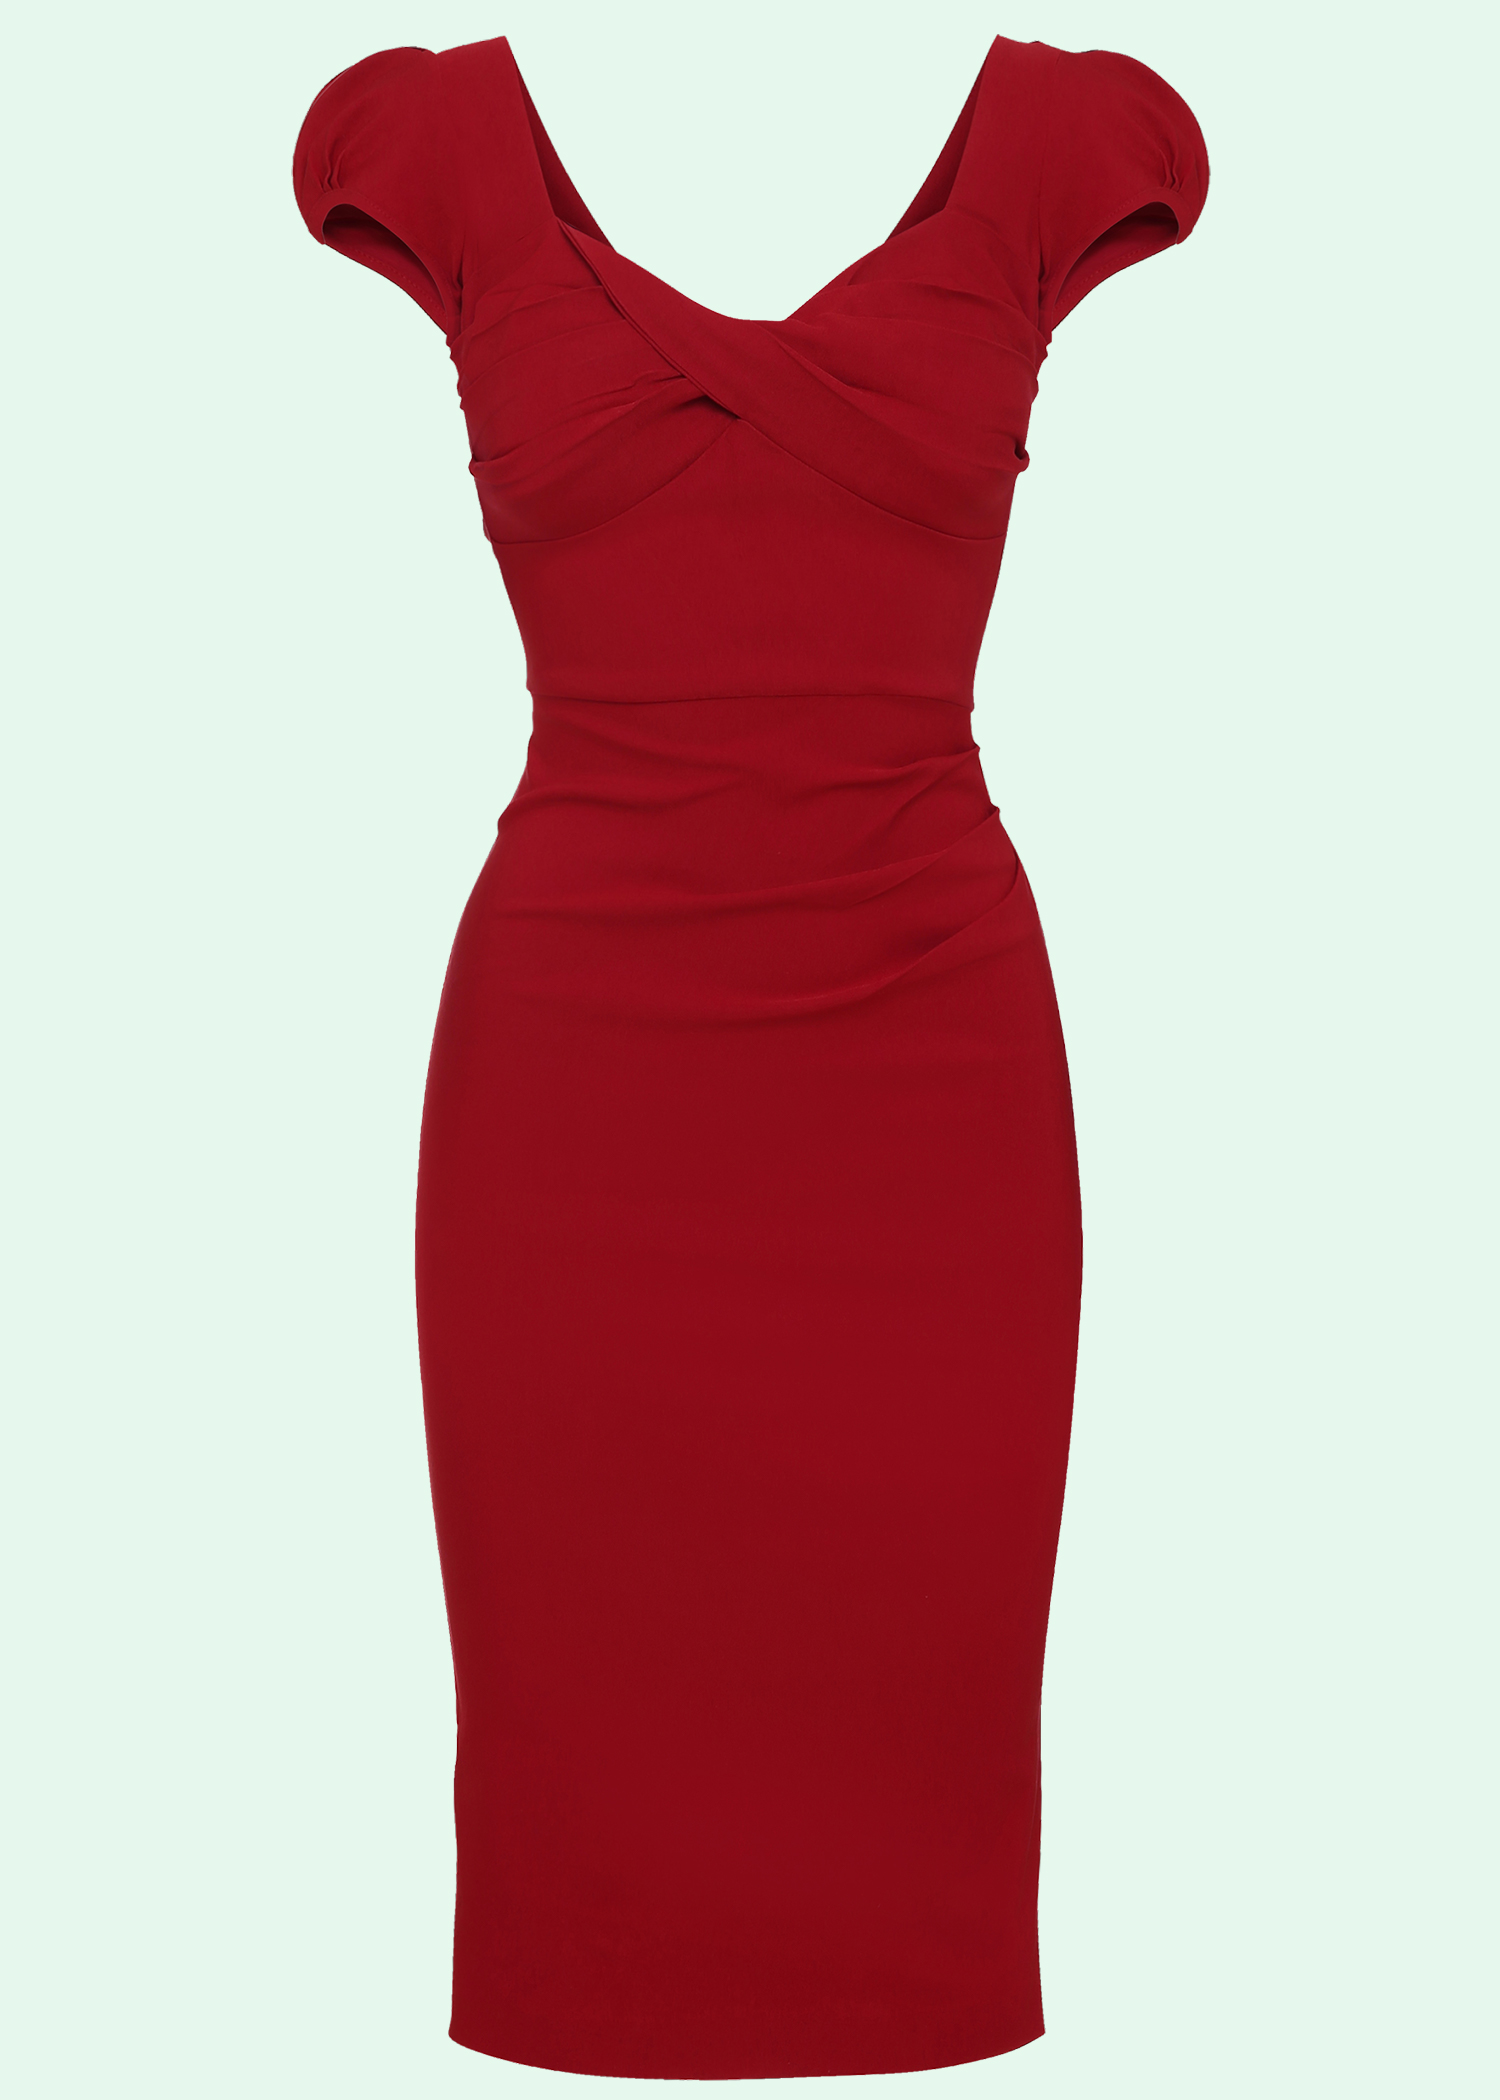 Red 50s inspired pencil dress from Stop Staring!